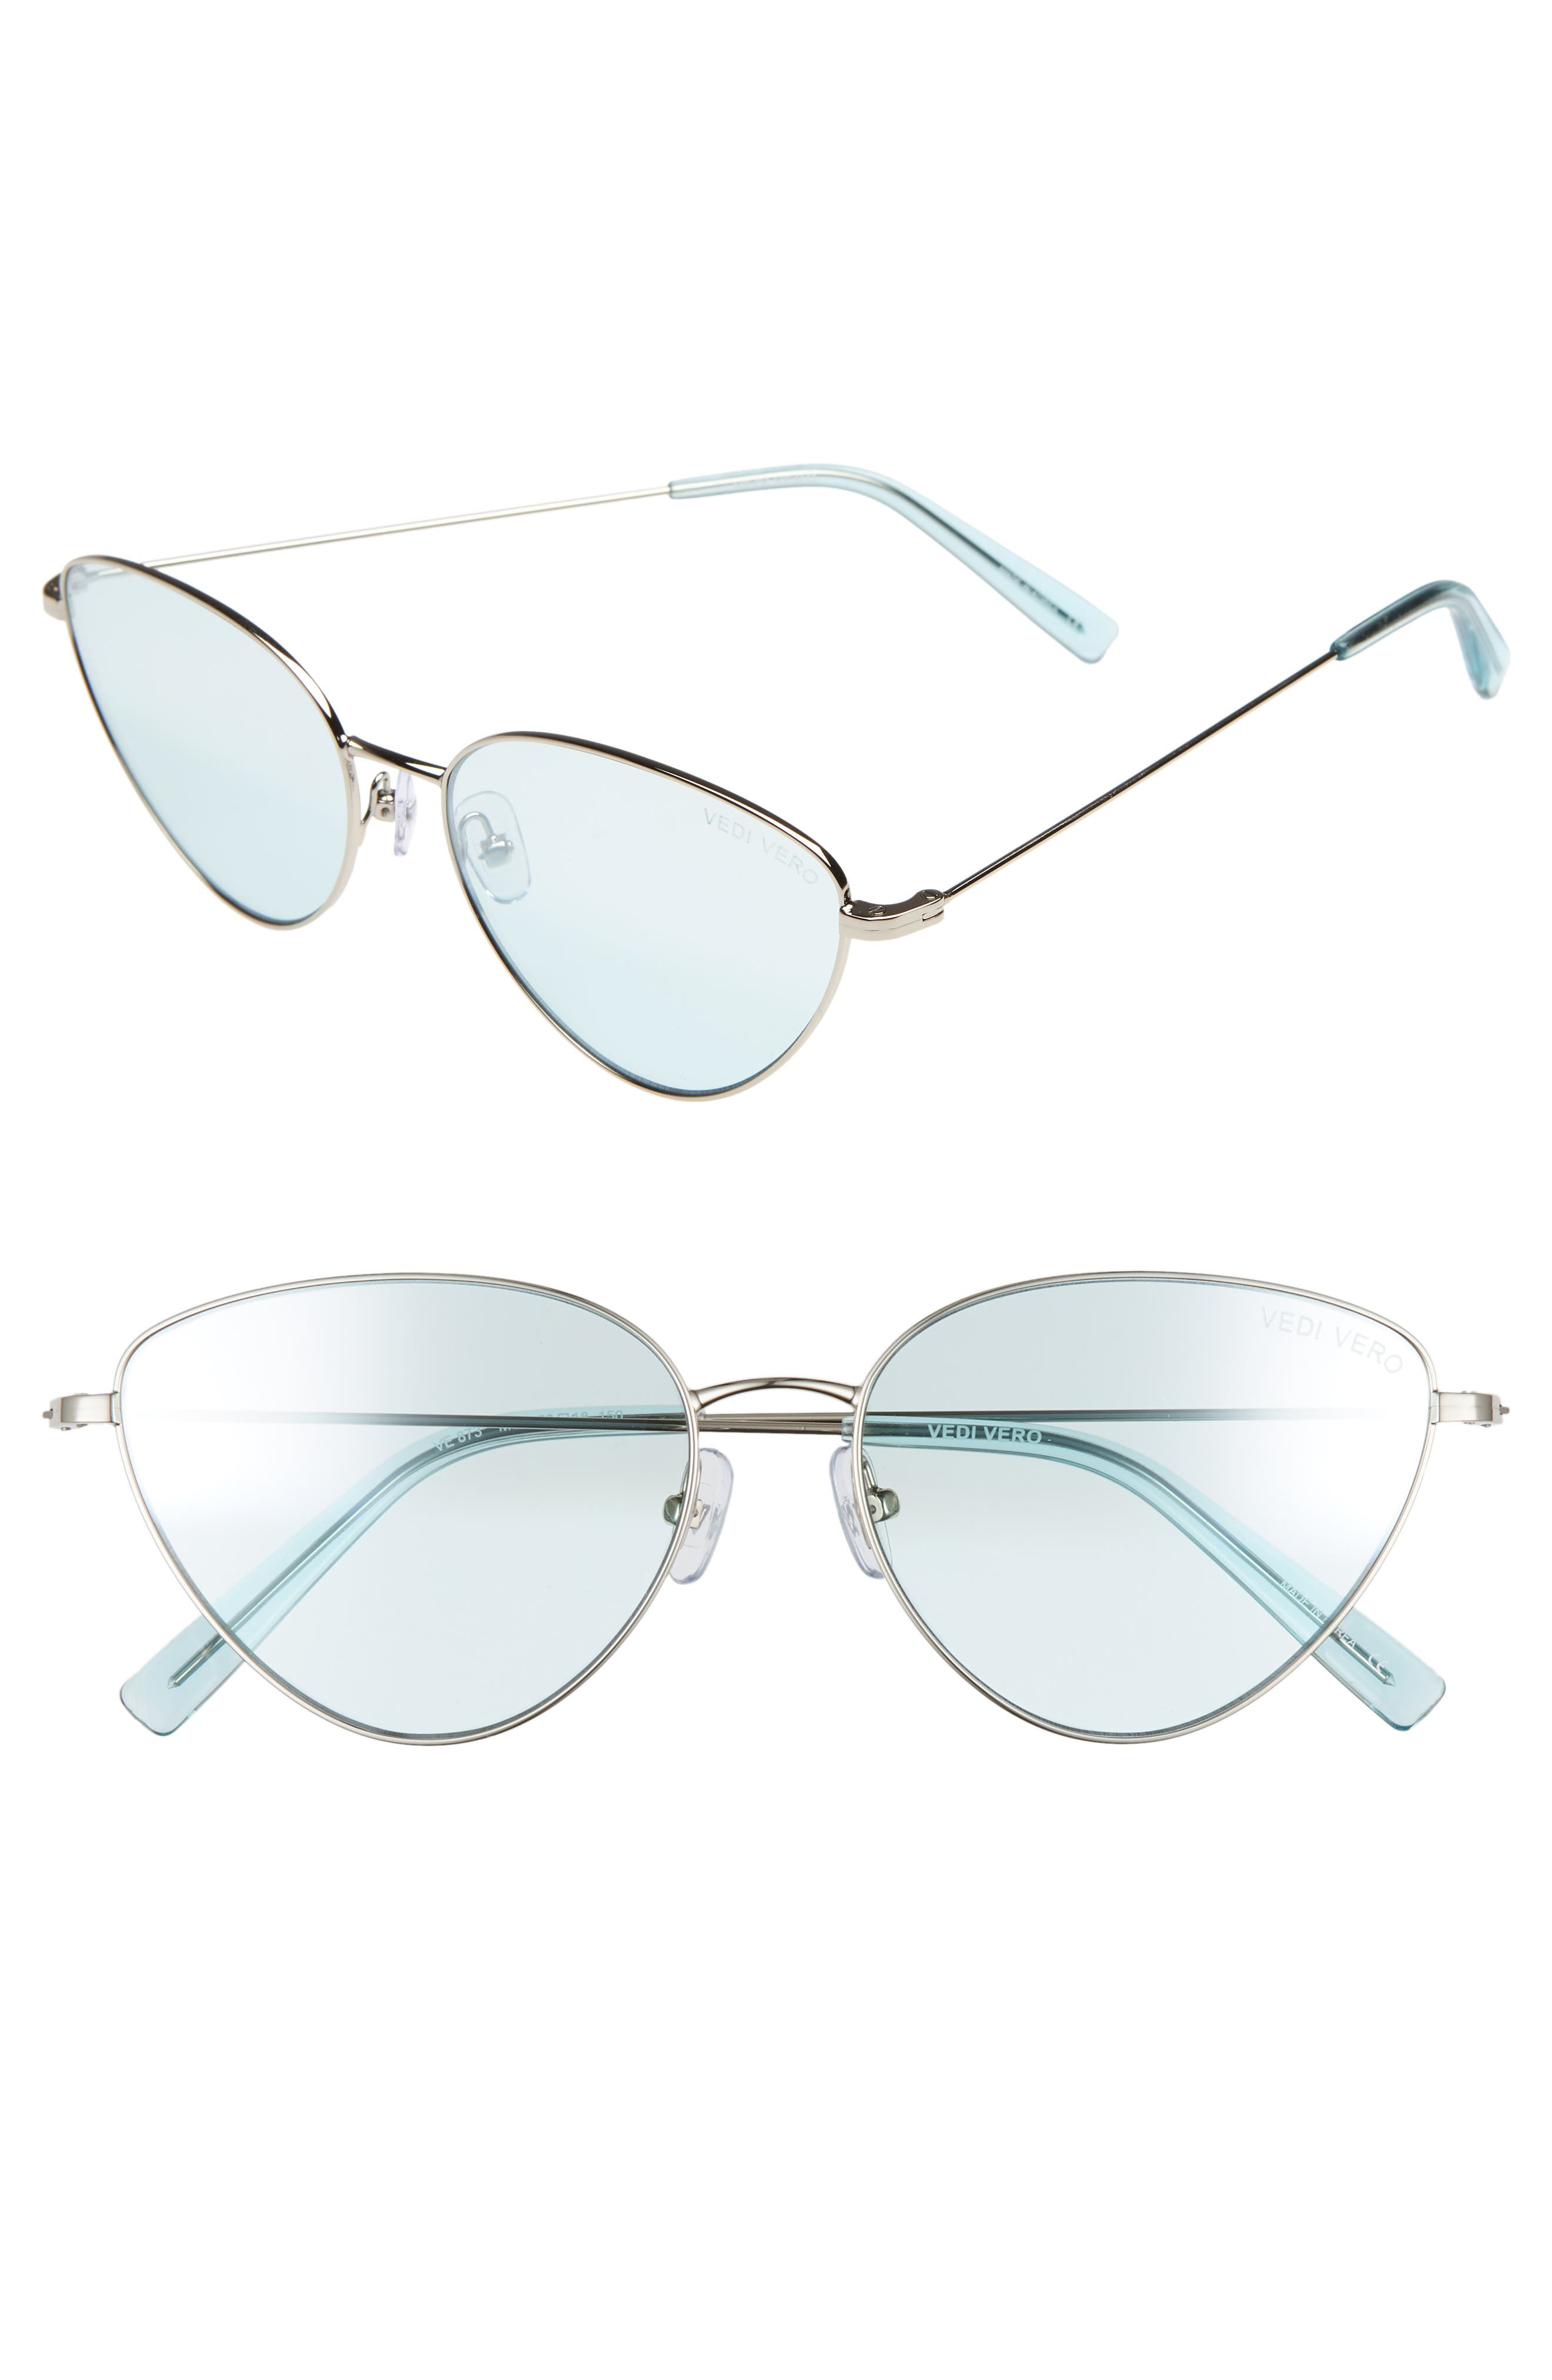 VEDI VERO 58Mm Cat Eye Sunglasses - Shiny Silver